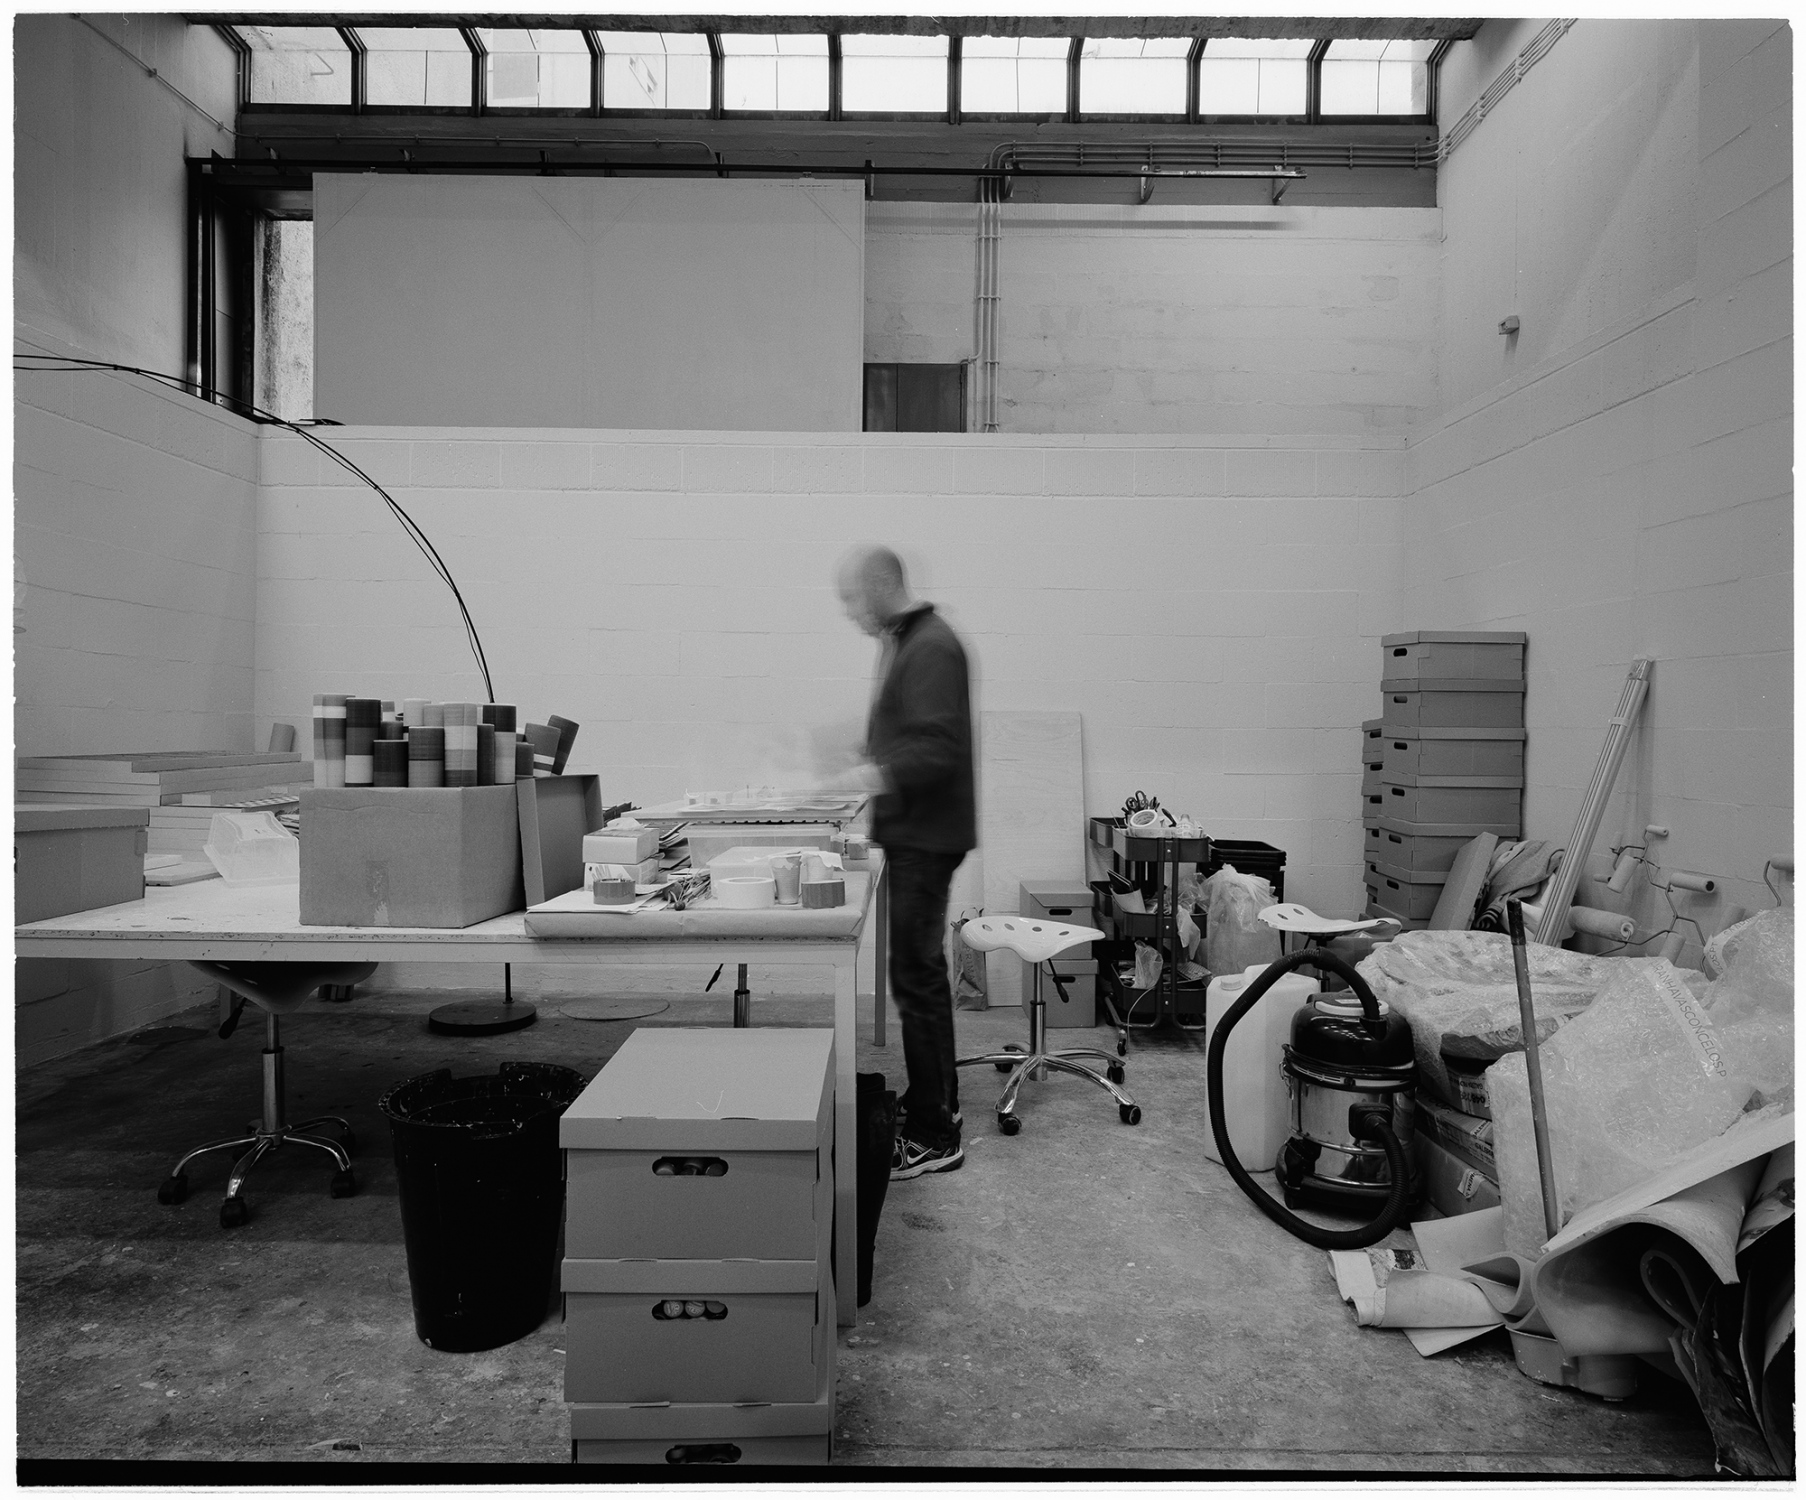 Rodrigo Oliveira in the studio, Lisbon, Portugal. In 2014. This image was made with black and white  film and Mamyia 7II camera, in 6x7 format. This numbered copied was processed in Ilford FB glossy paper, 50x60cm.